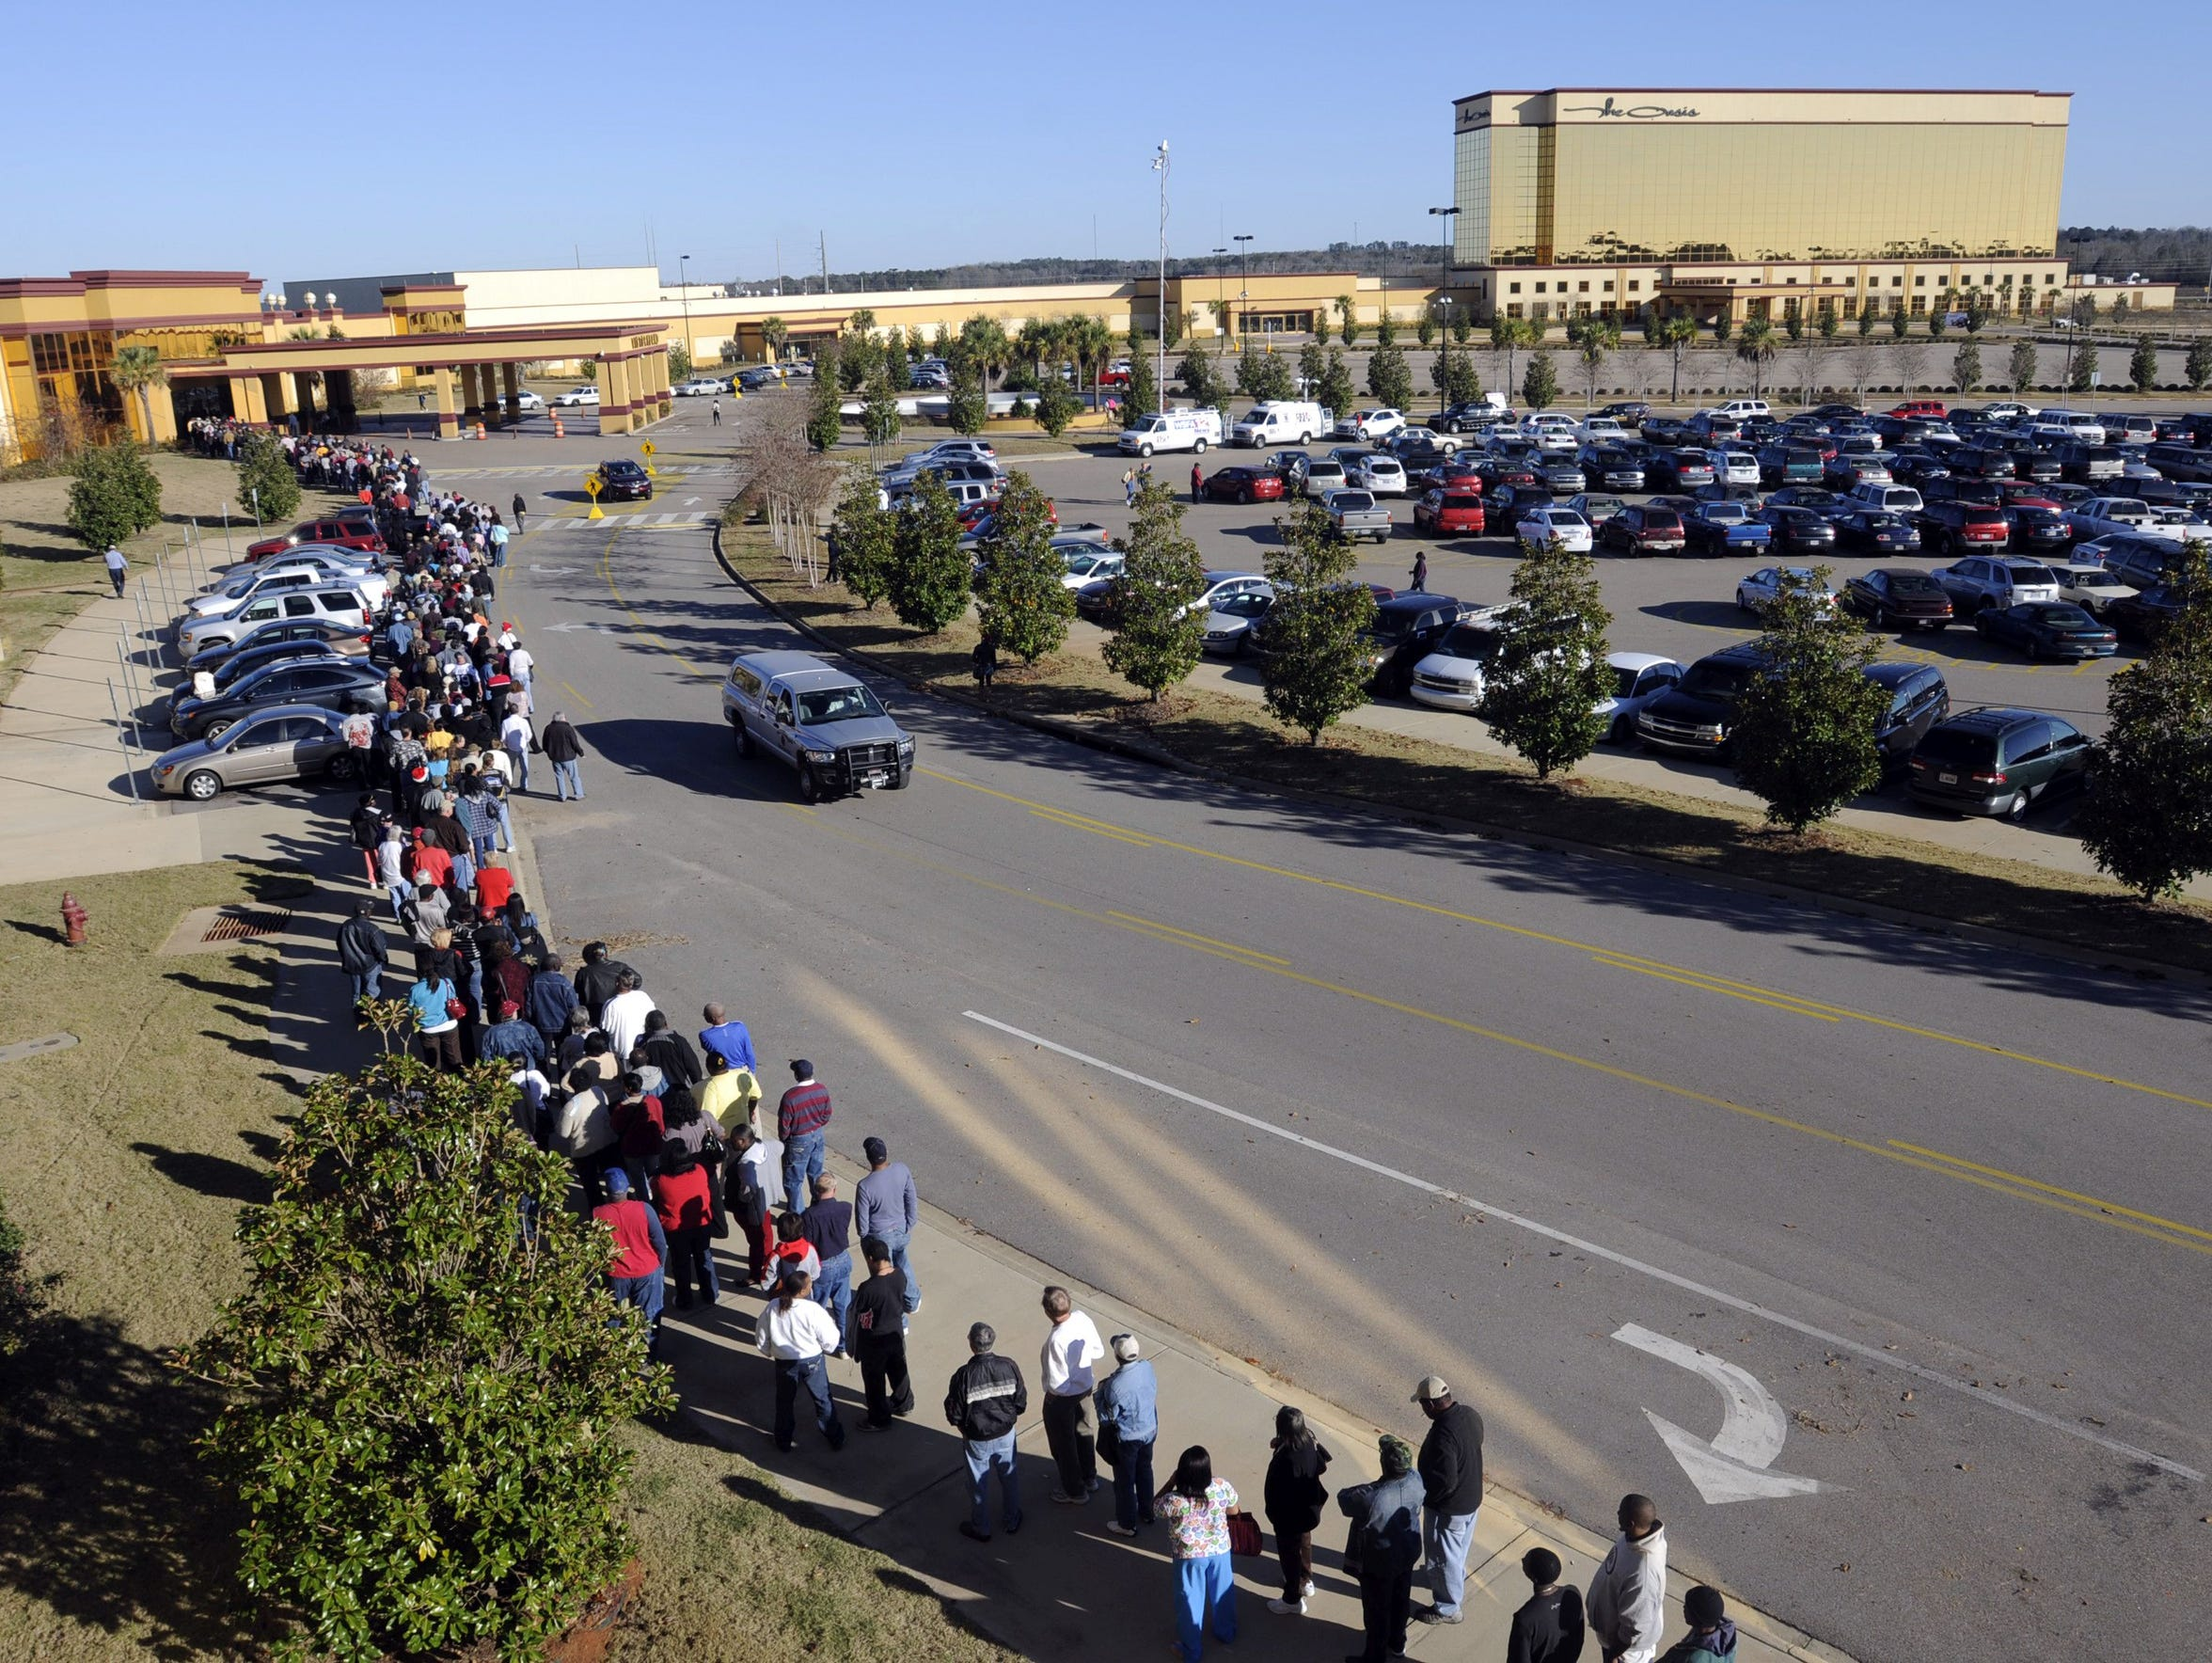 Hundreds line up to get inside VictoryLand in this